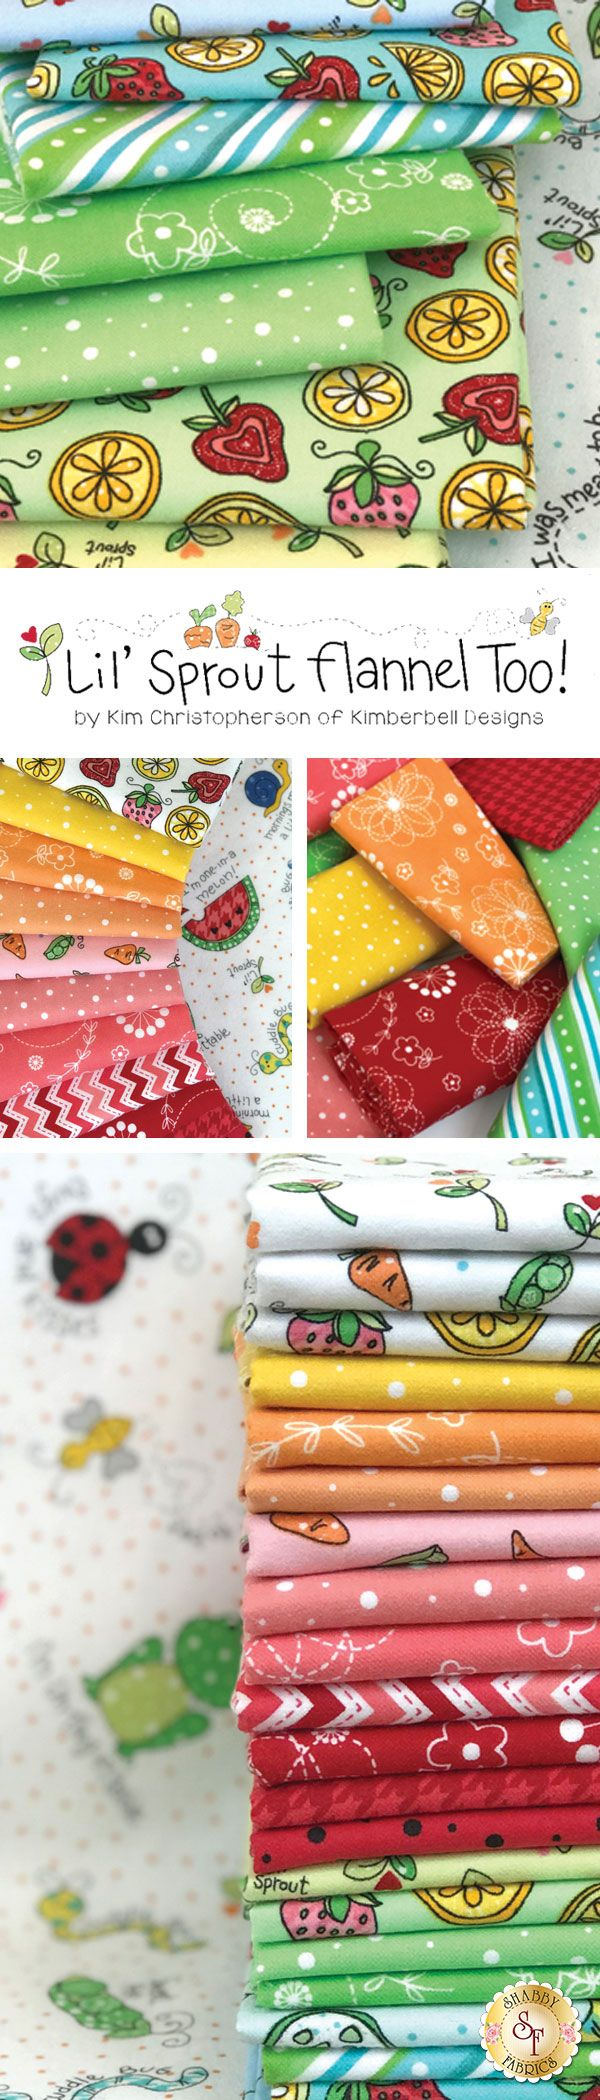 Lil' Sprout Flannel Too by Kim Christopherson for Maywood Studio Fabrics is an adorable flannel collection available at Shabby Fabrics